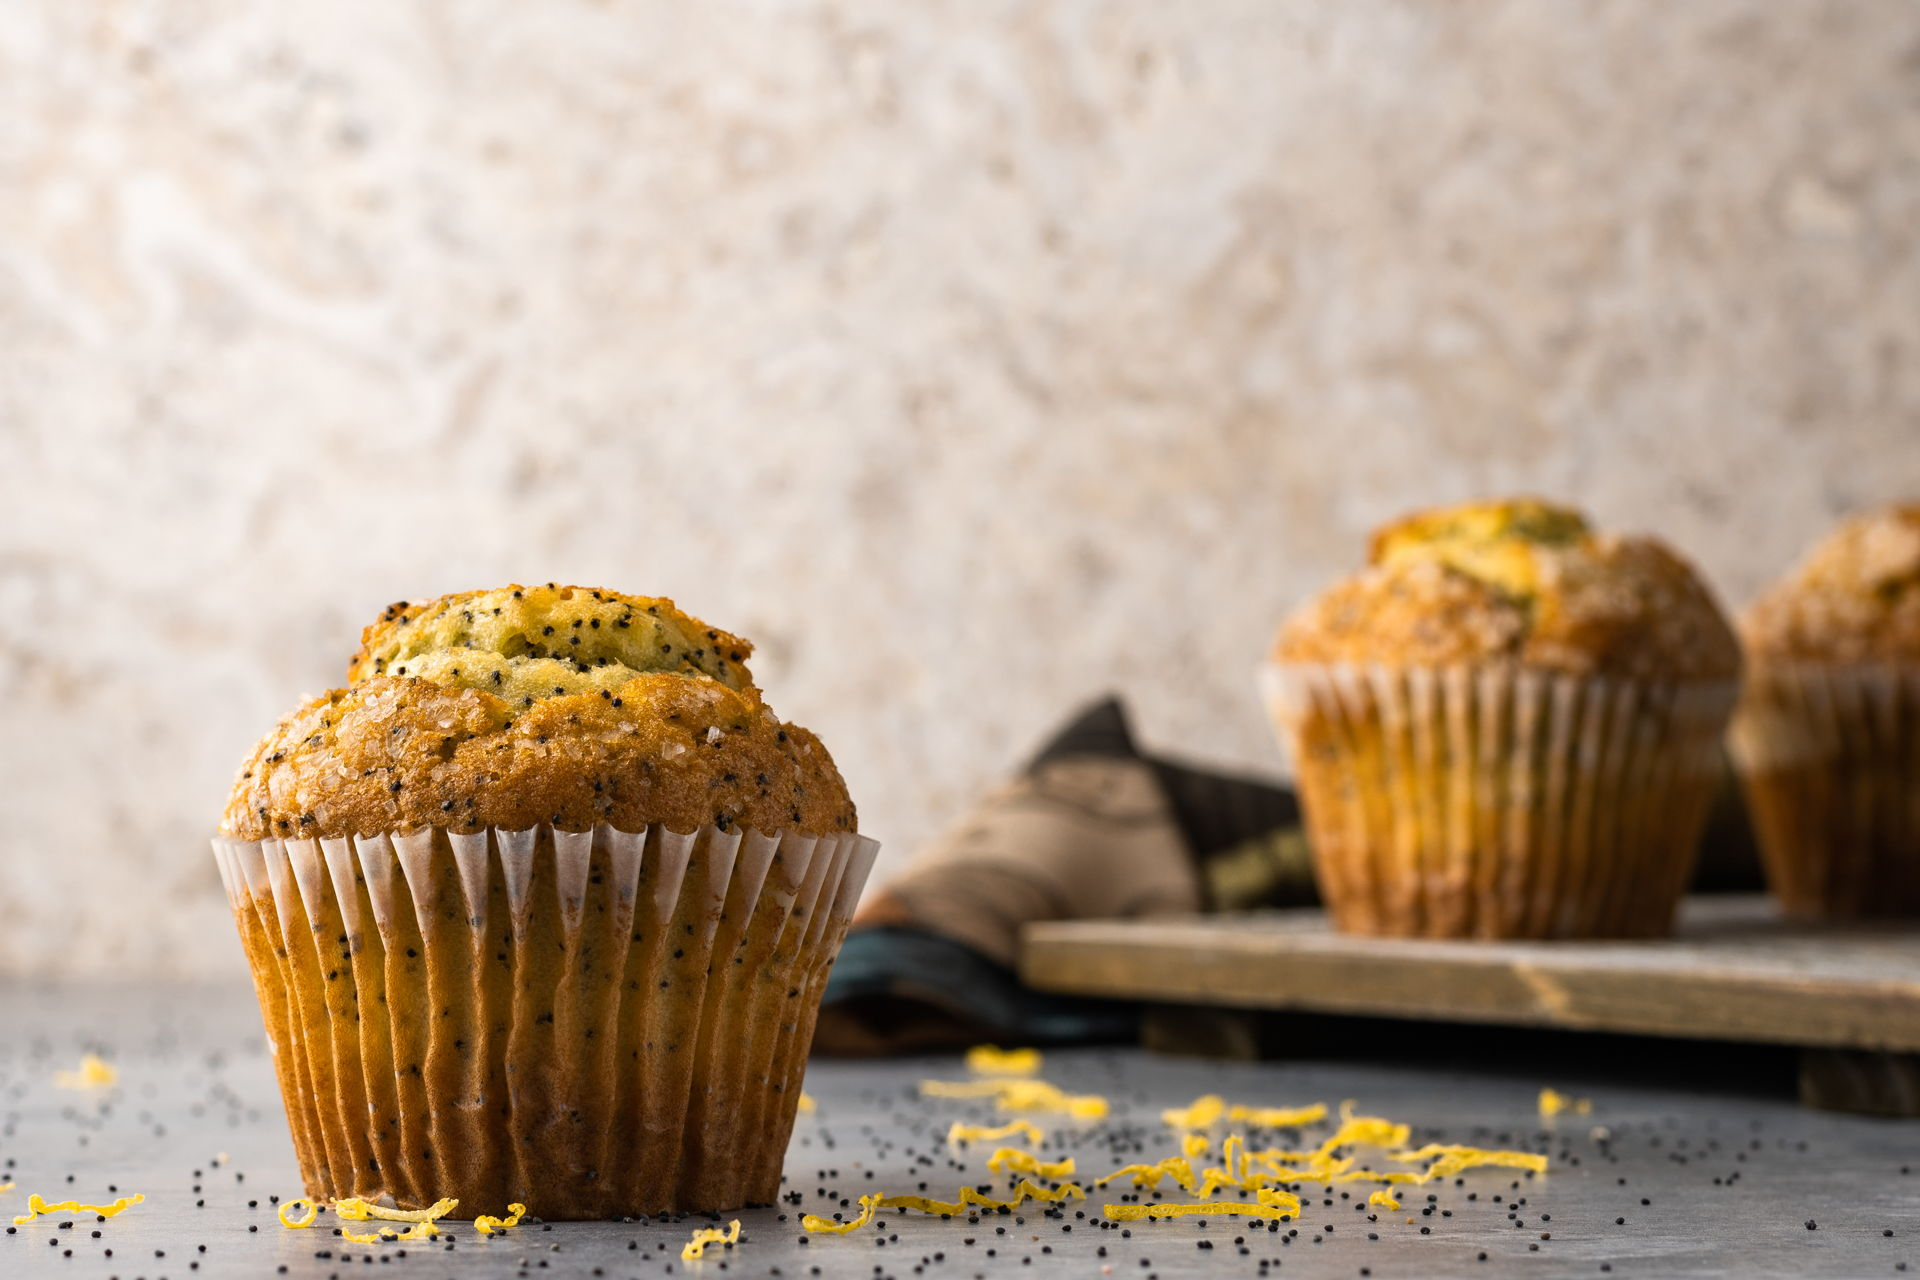 Will Your Poppy Seed Muffin Show up on an Employee Drug Test?